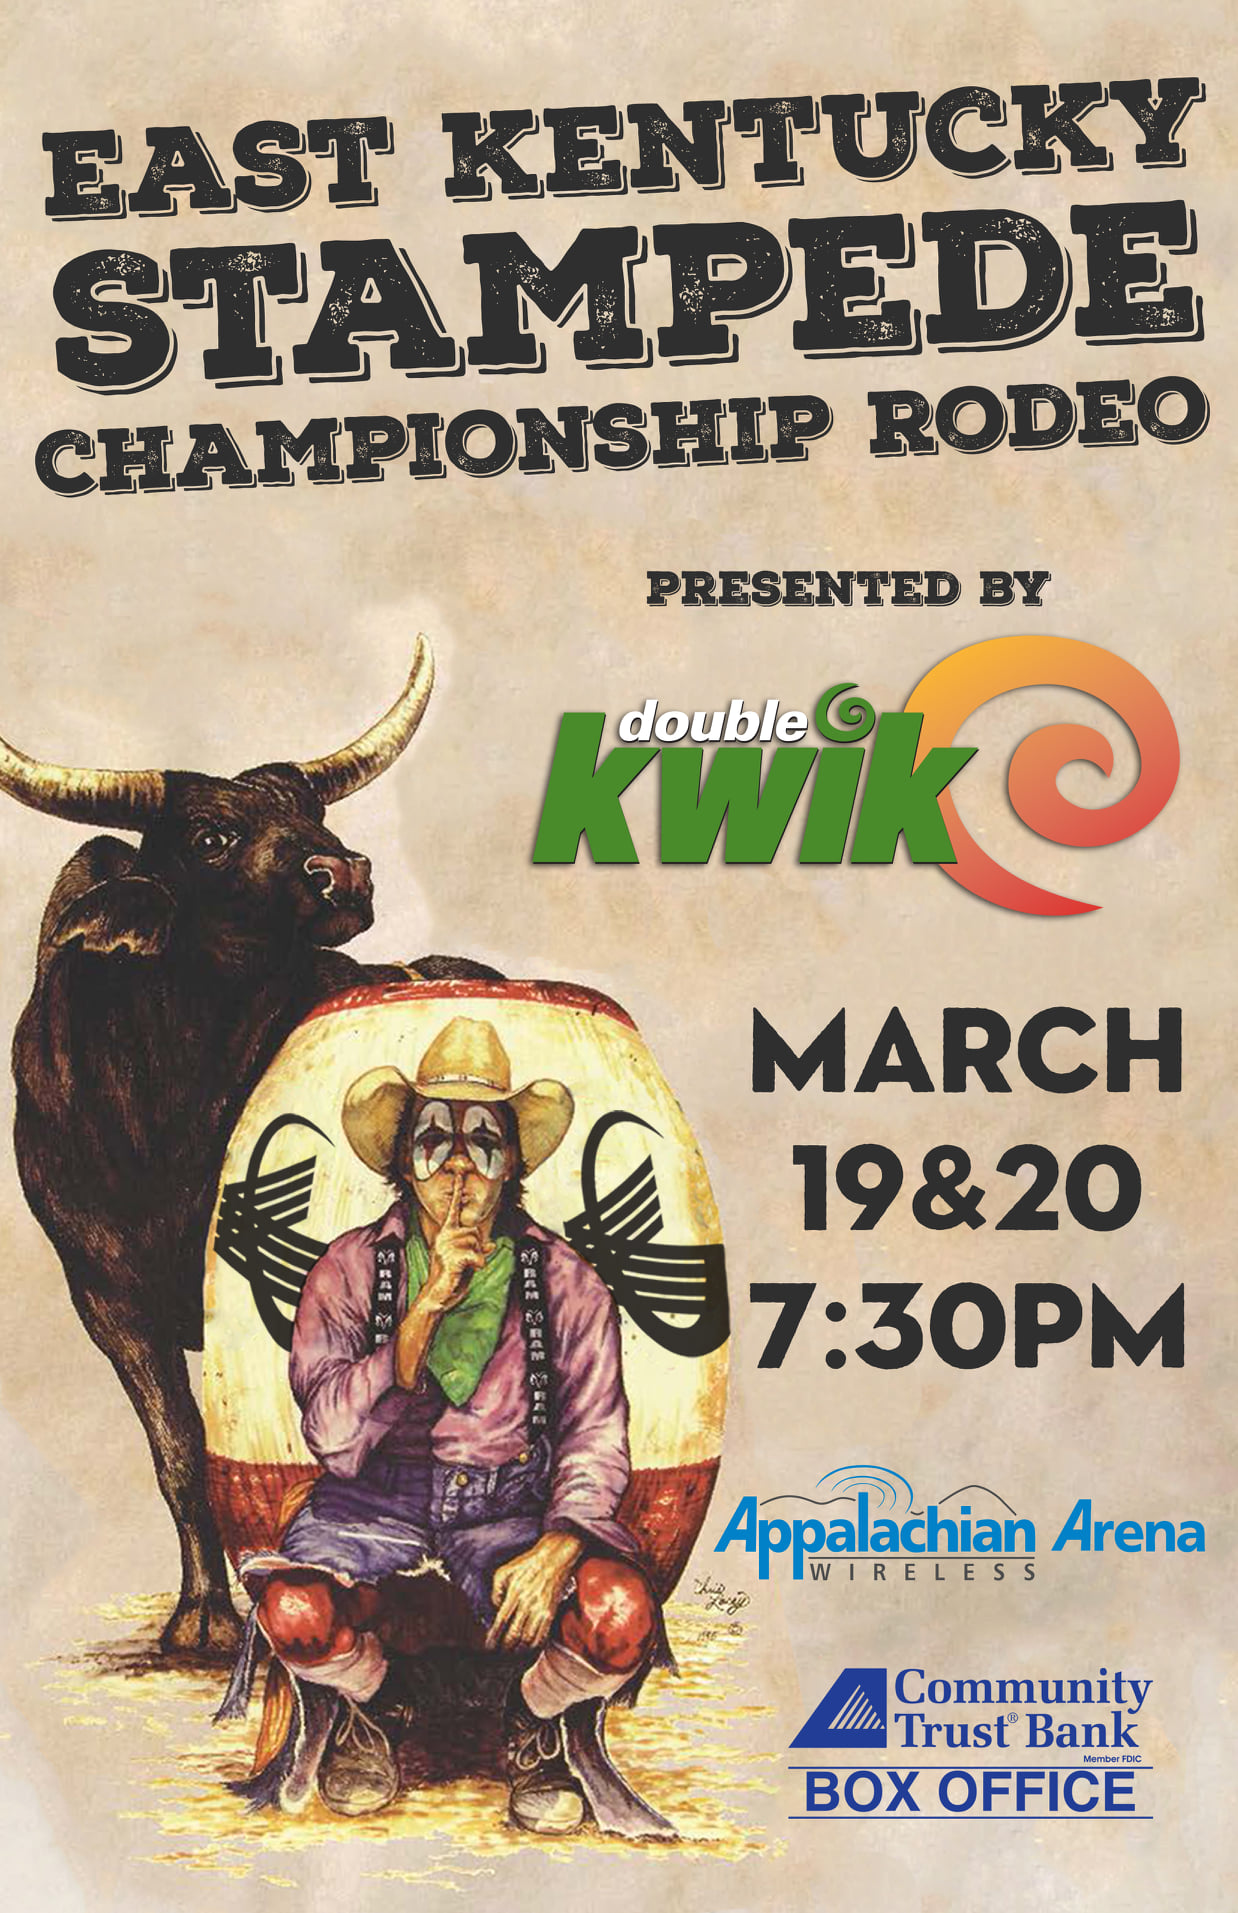 East Kentucky Stampede Championship Rodeo